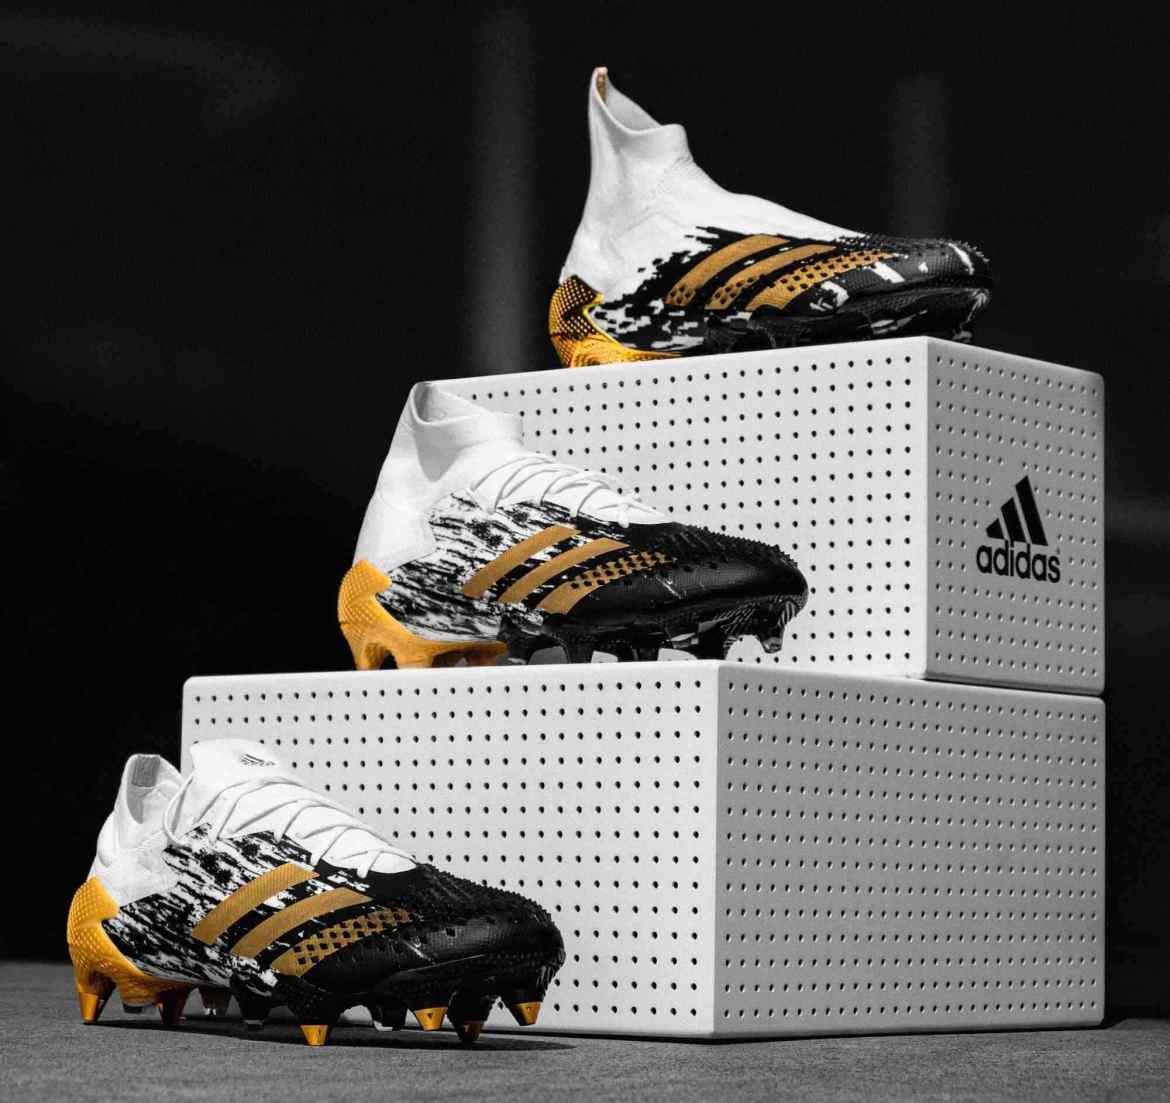 Soccer Cleats purchase Guide : Is it worth buying the branded boots for playing Football?